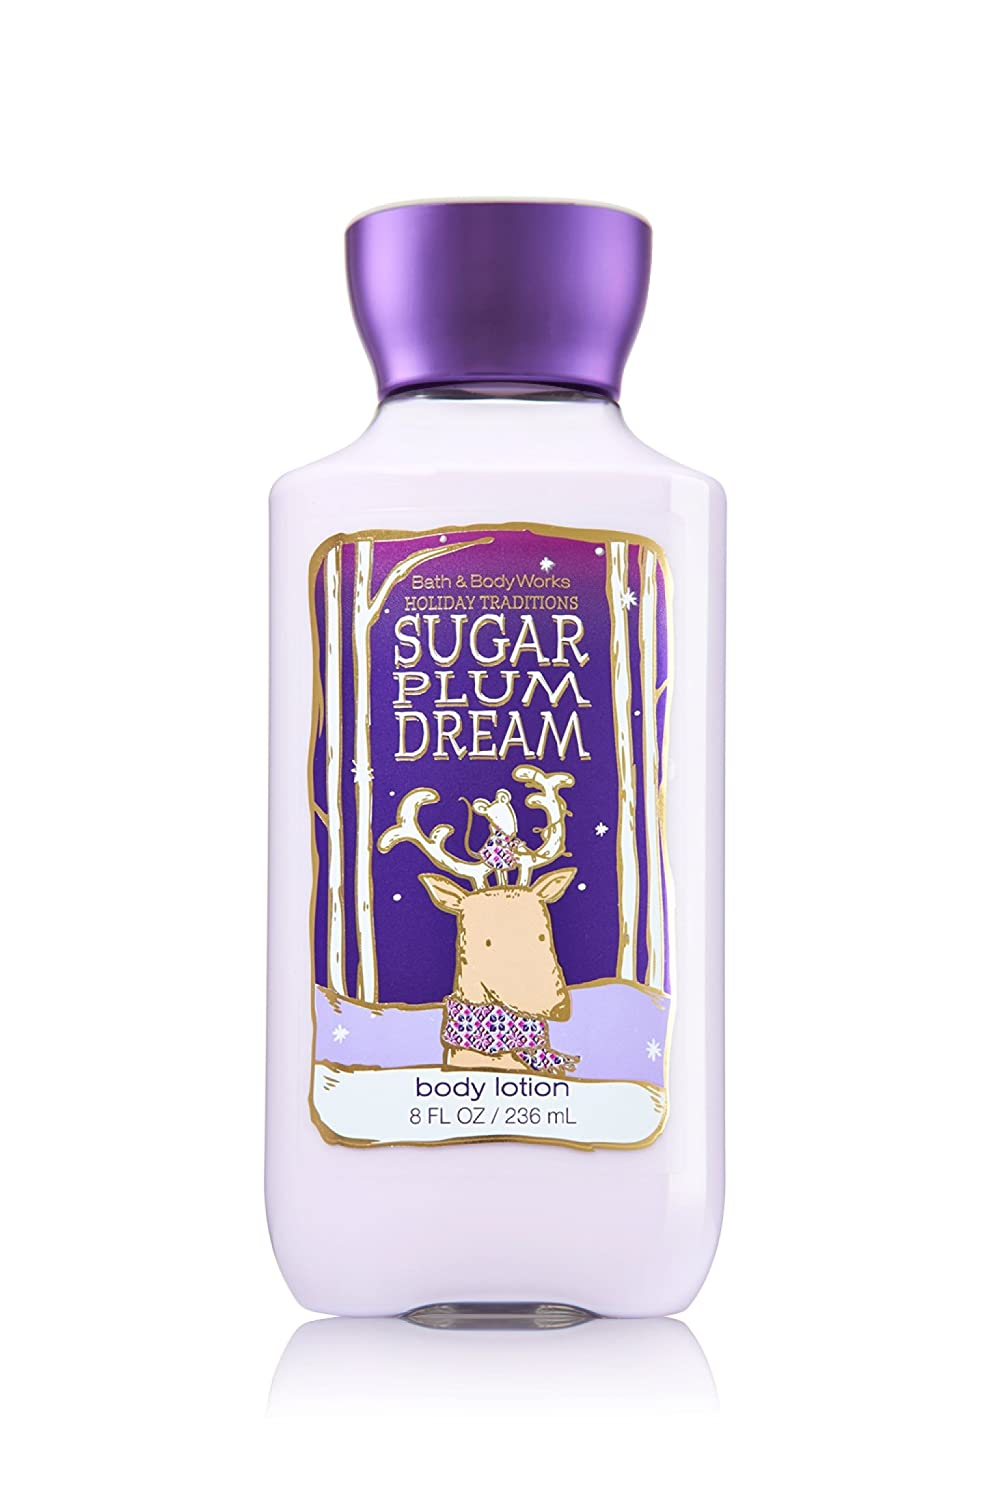 Bath and body works holiday scents - Amazon Com Bath And Body Works Holiday Body Lotion Sugar Plum Dream Beauty